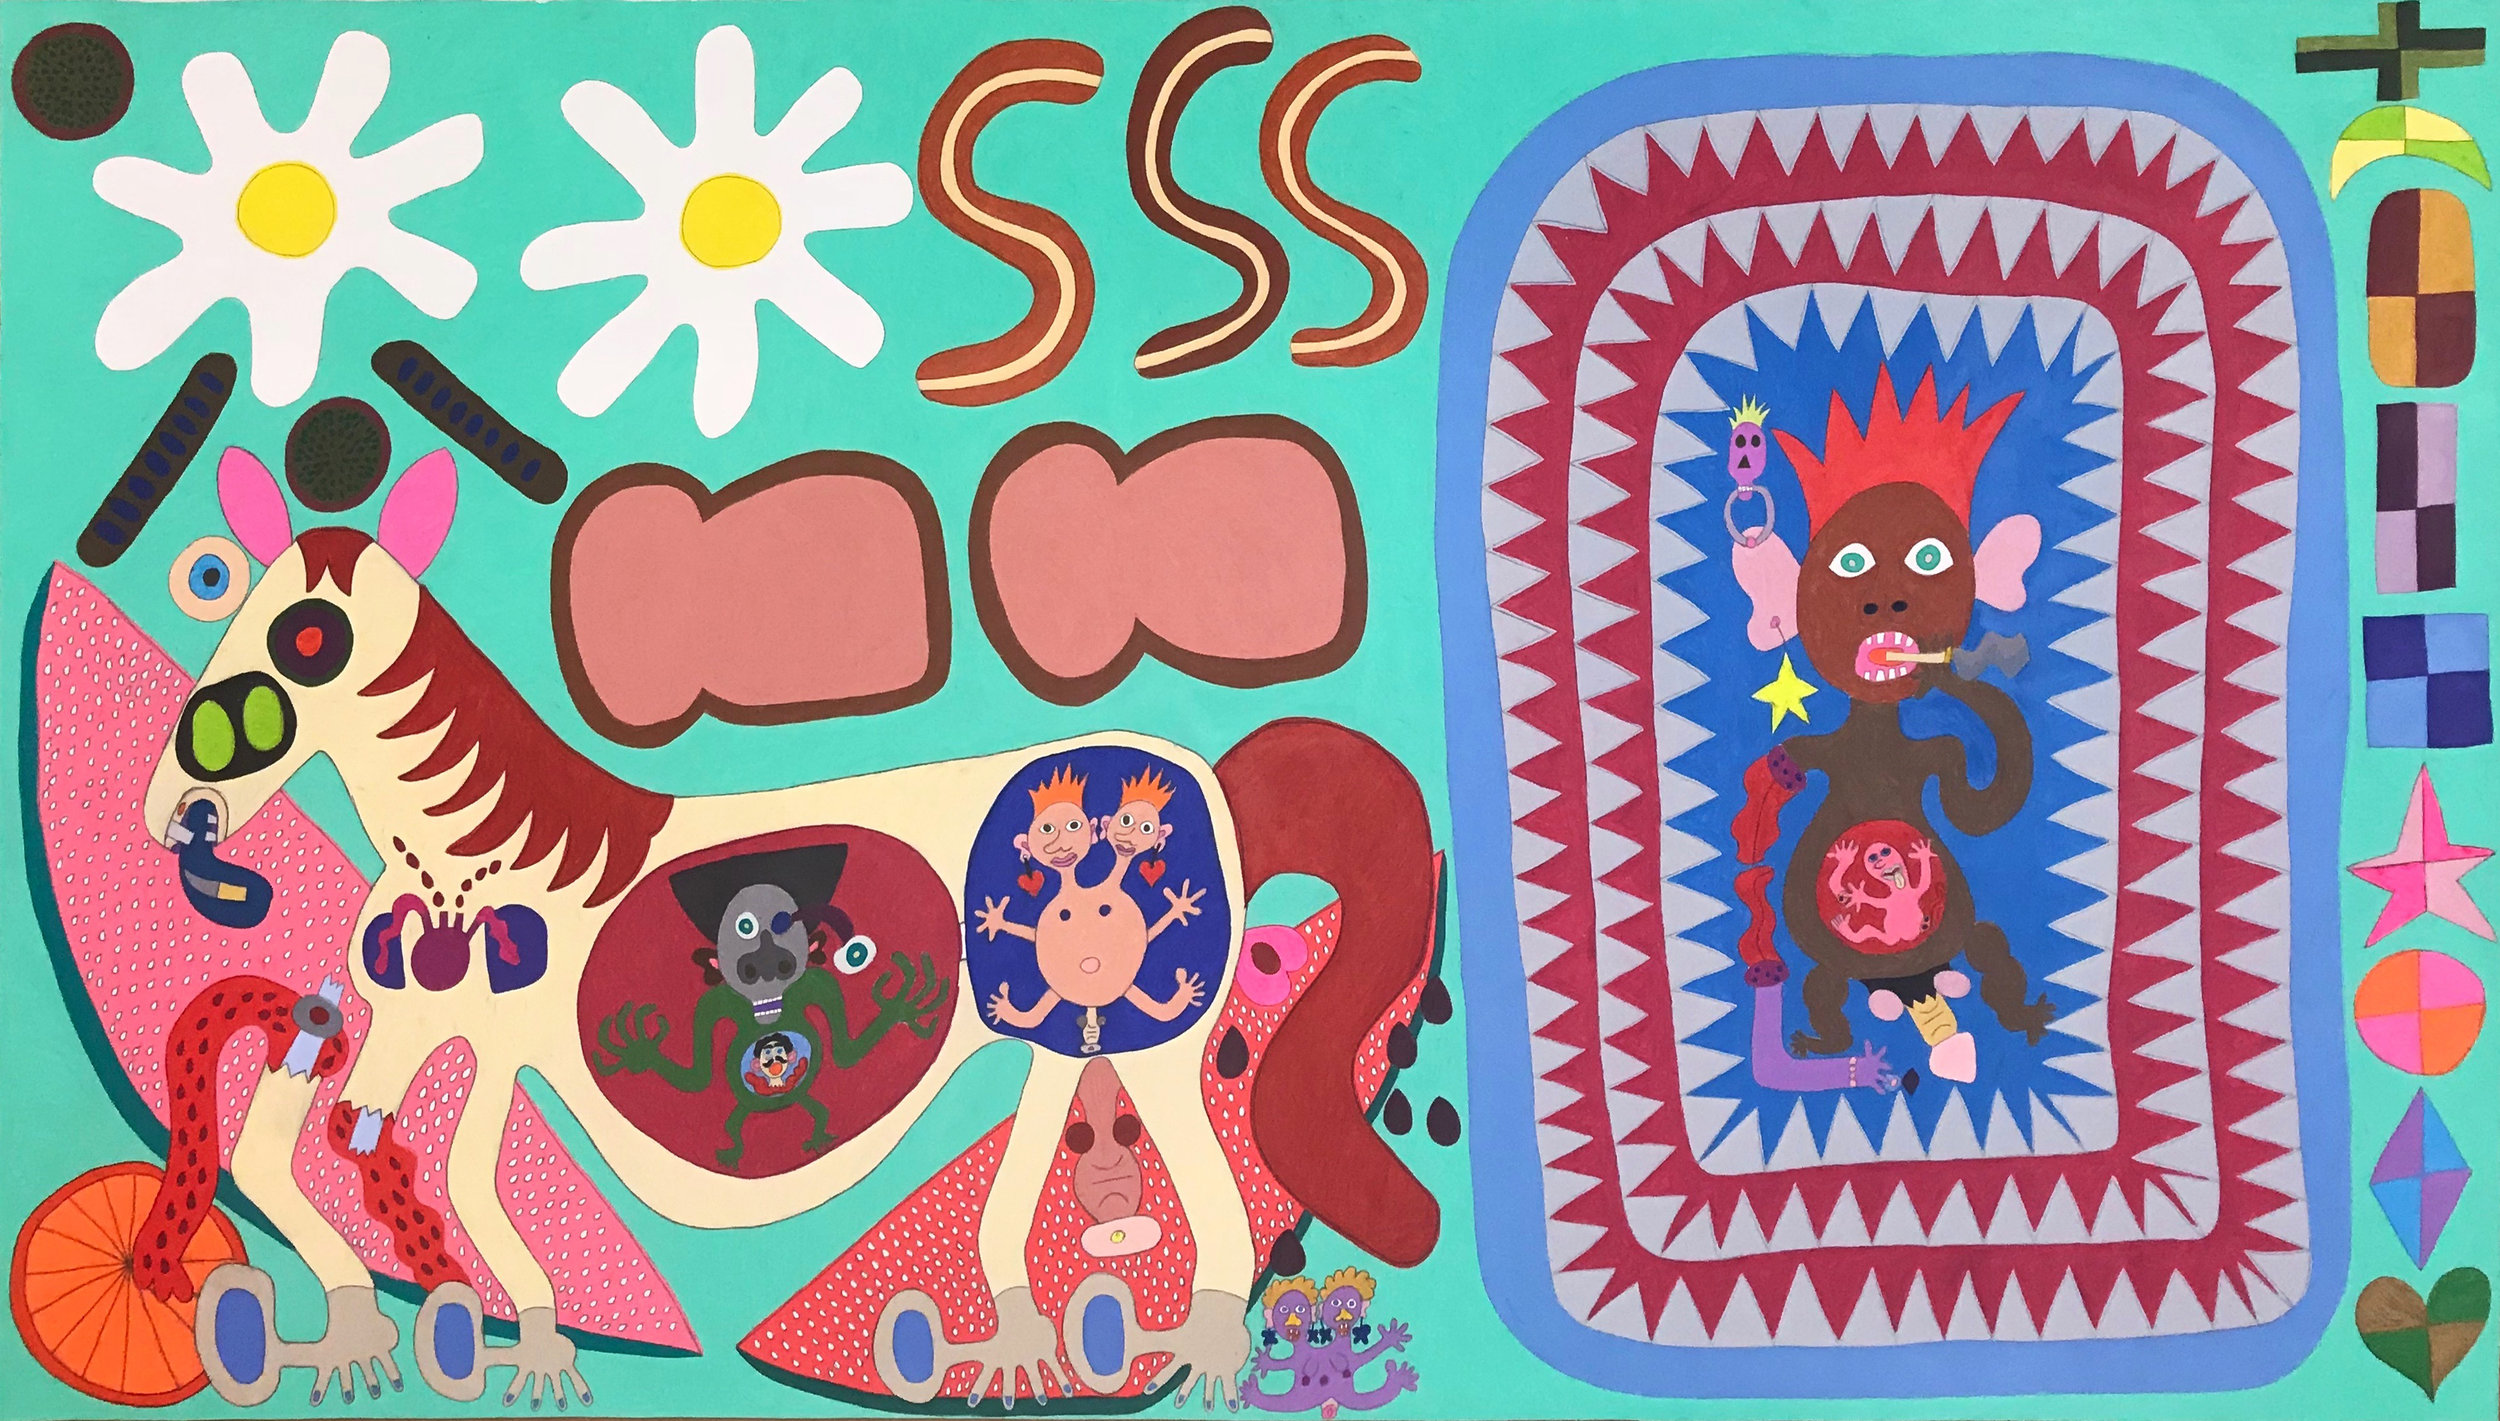 """Raquel Albarran,  Breakfast Meal with Smoking Baby Inside the Shark Mouth and Big Giant Horse with Toe Babies Inside the Placenta and One Baby Got Pooped Out, Horse Leg Got Broken in Half  (2018) Pencil on paper, 36x68"""""""